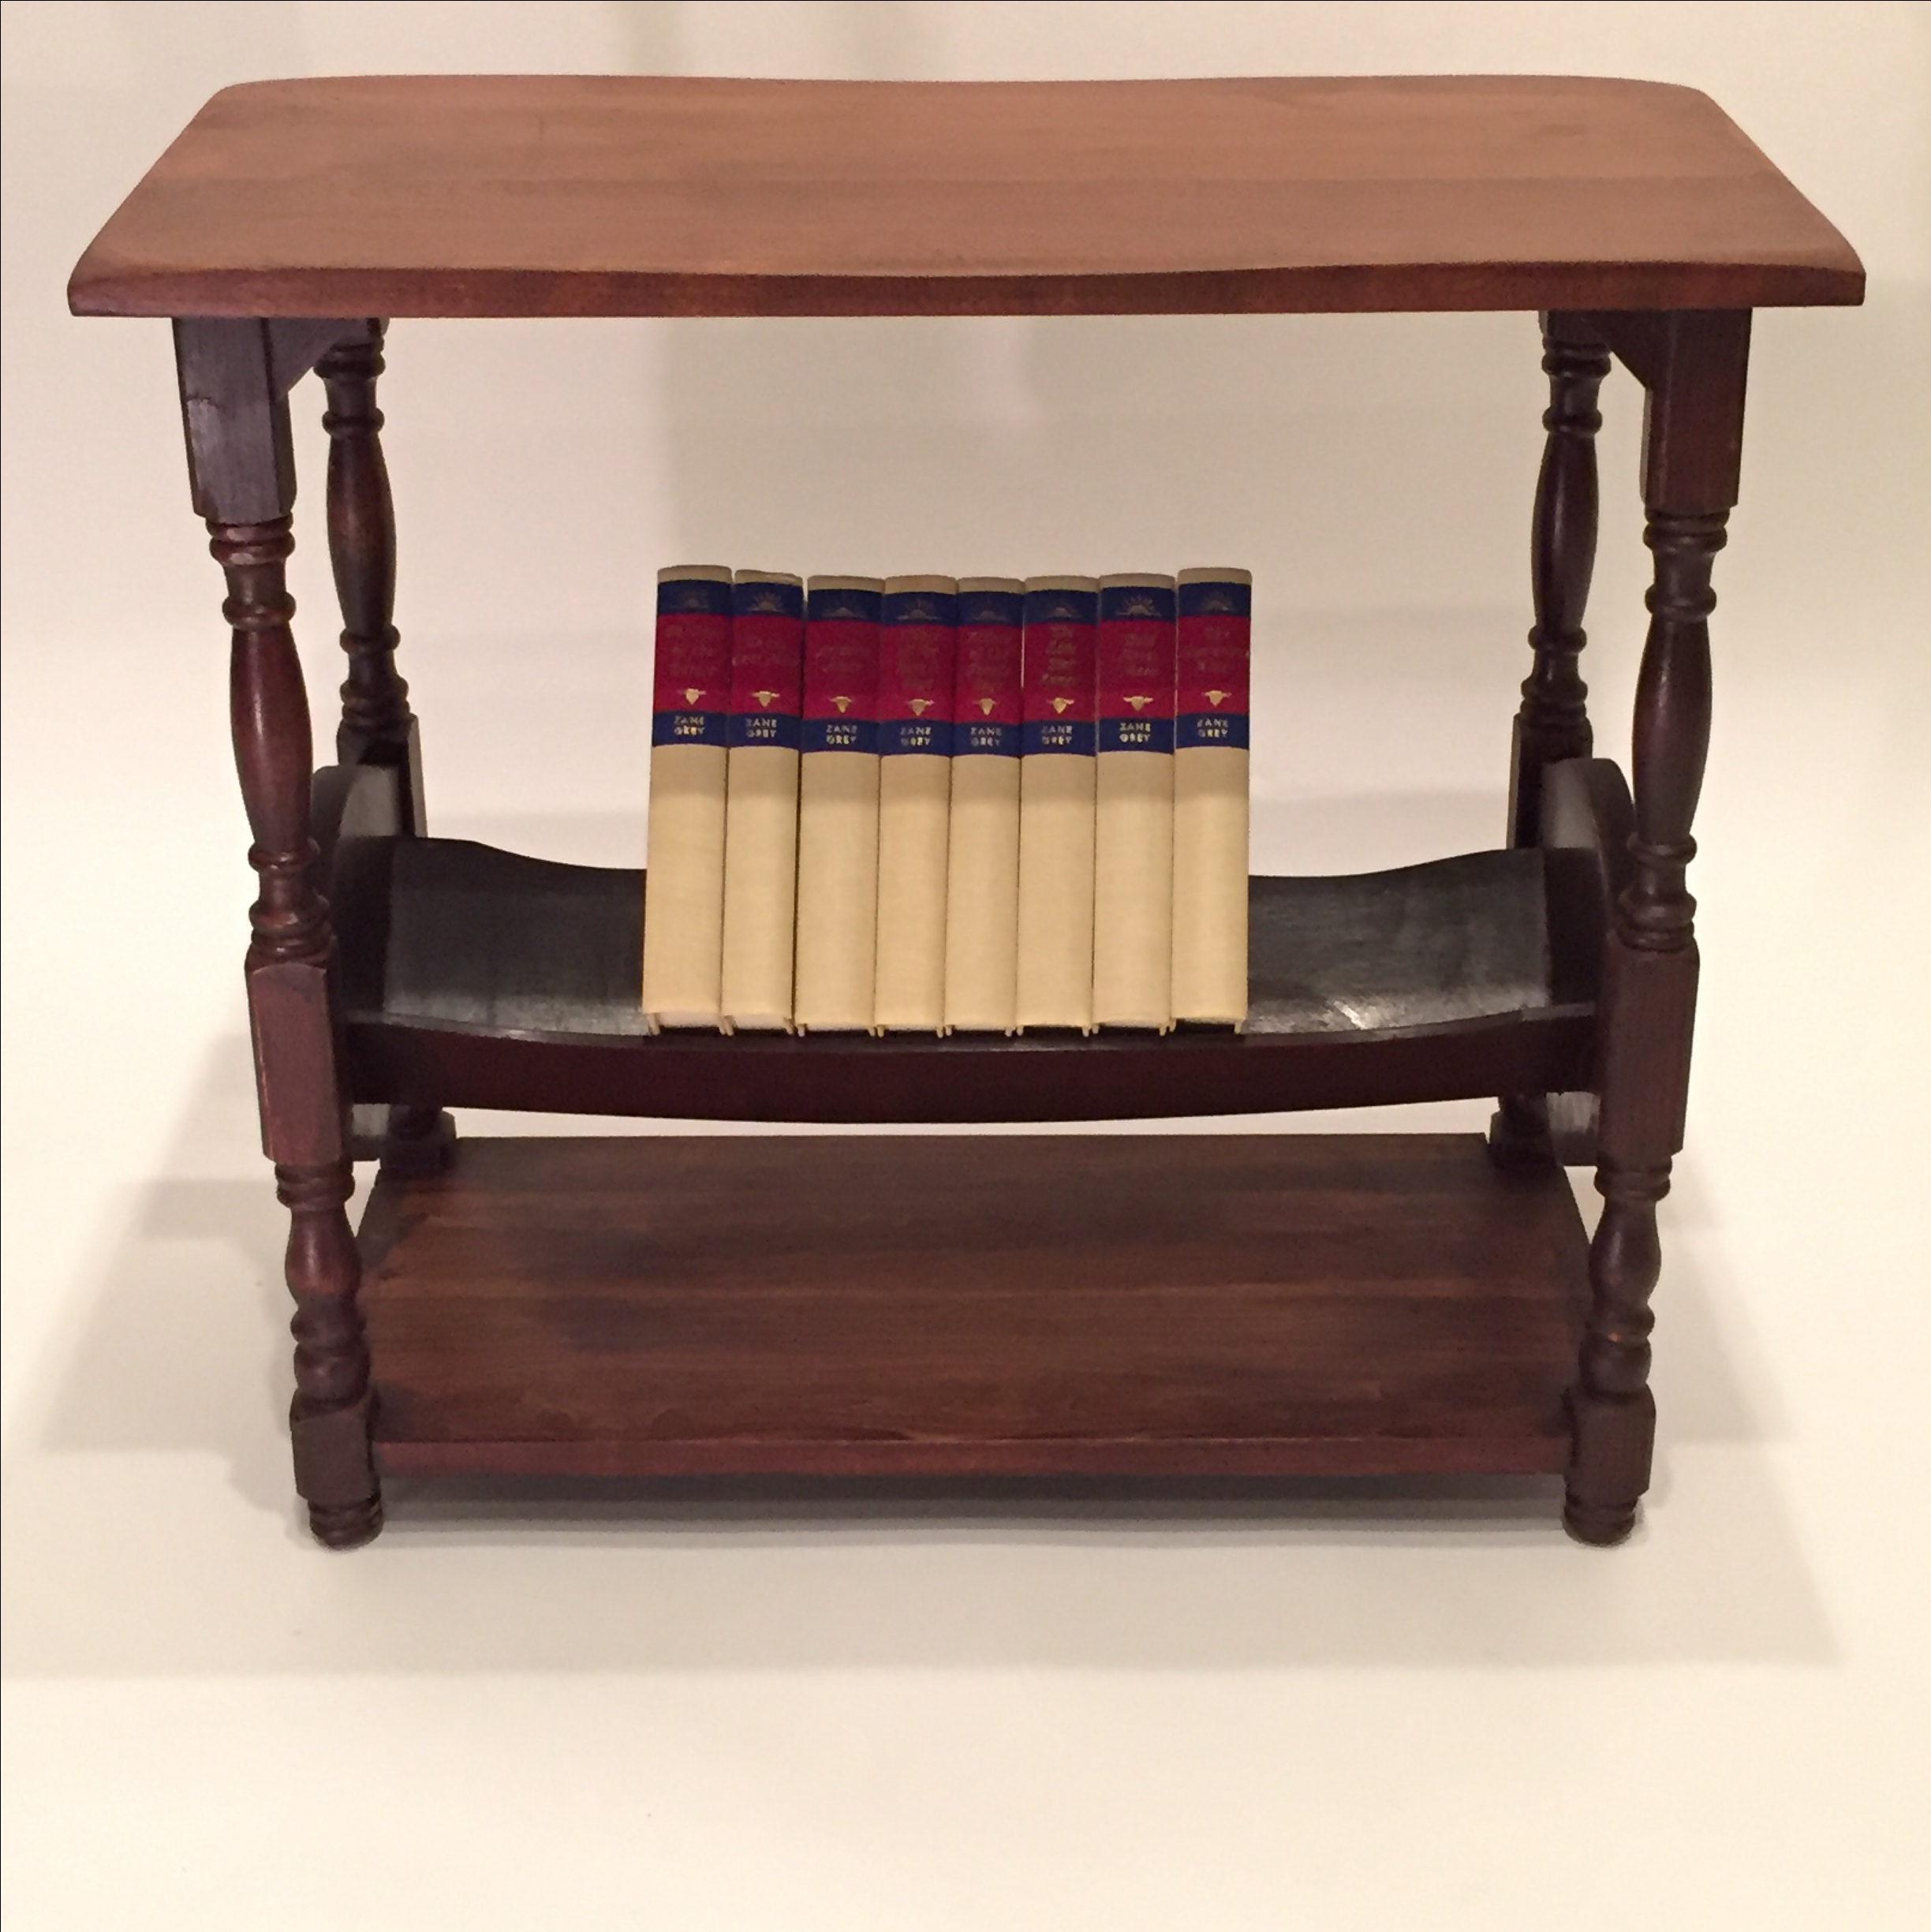 Charming Rustic Side Table With Lower Bookshelf. Books Not Included.  English Style Walnut.